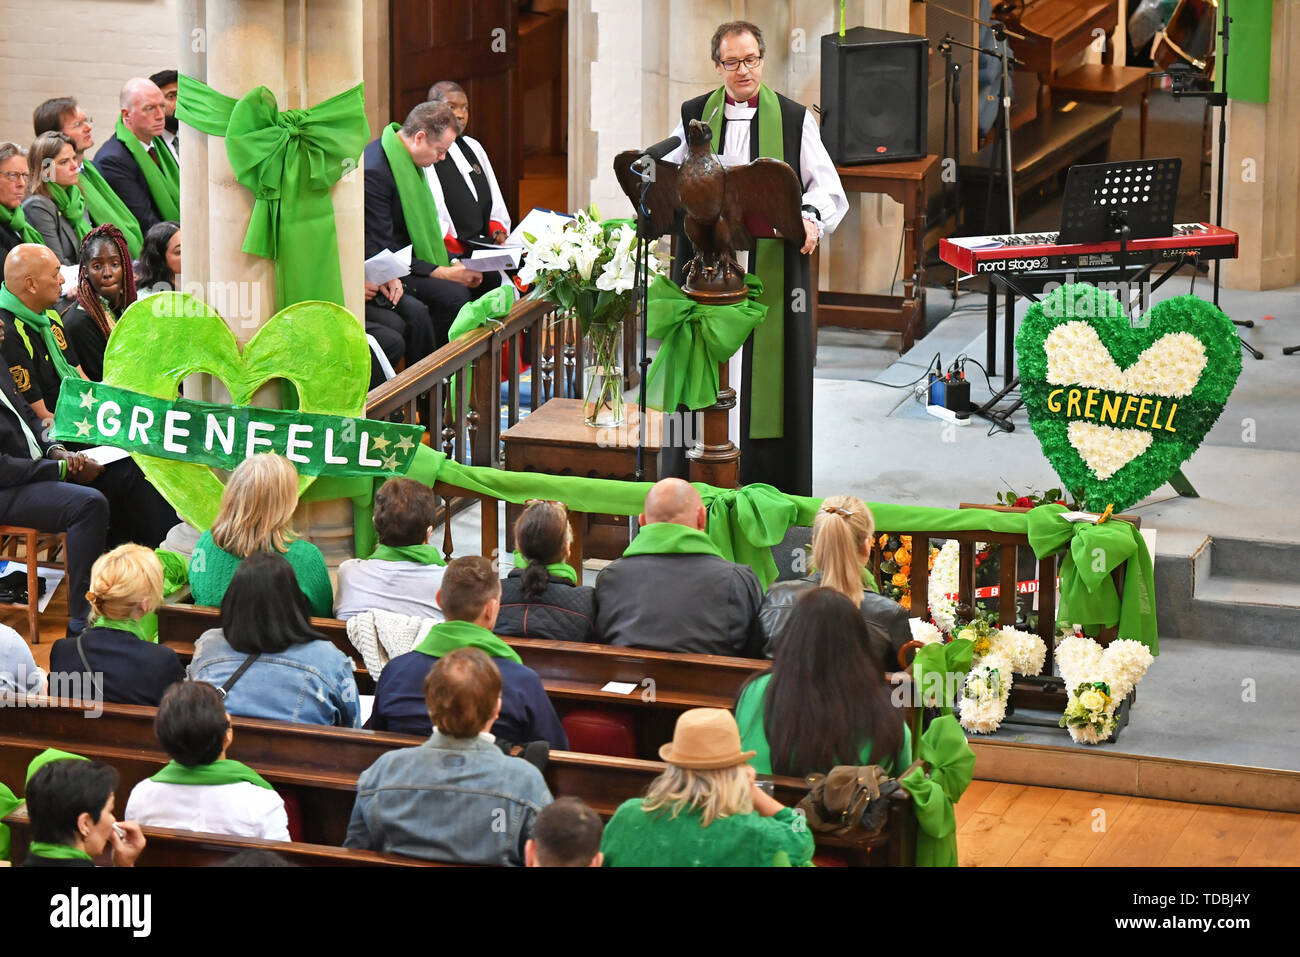 Dr Graham Tomlin, the Bishop of Kensington, speaks at a service of remembrance takes place at St Helens church, London, to mark the two-year anniversary of the Grenfell Tower block fire. - Stock Image